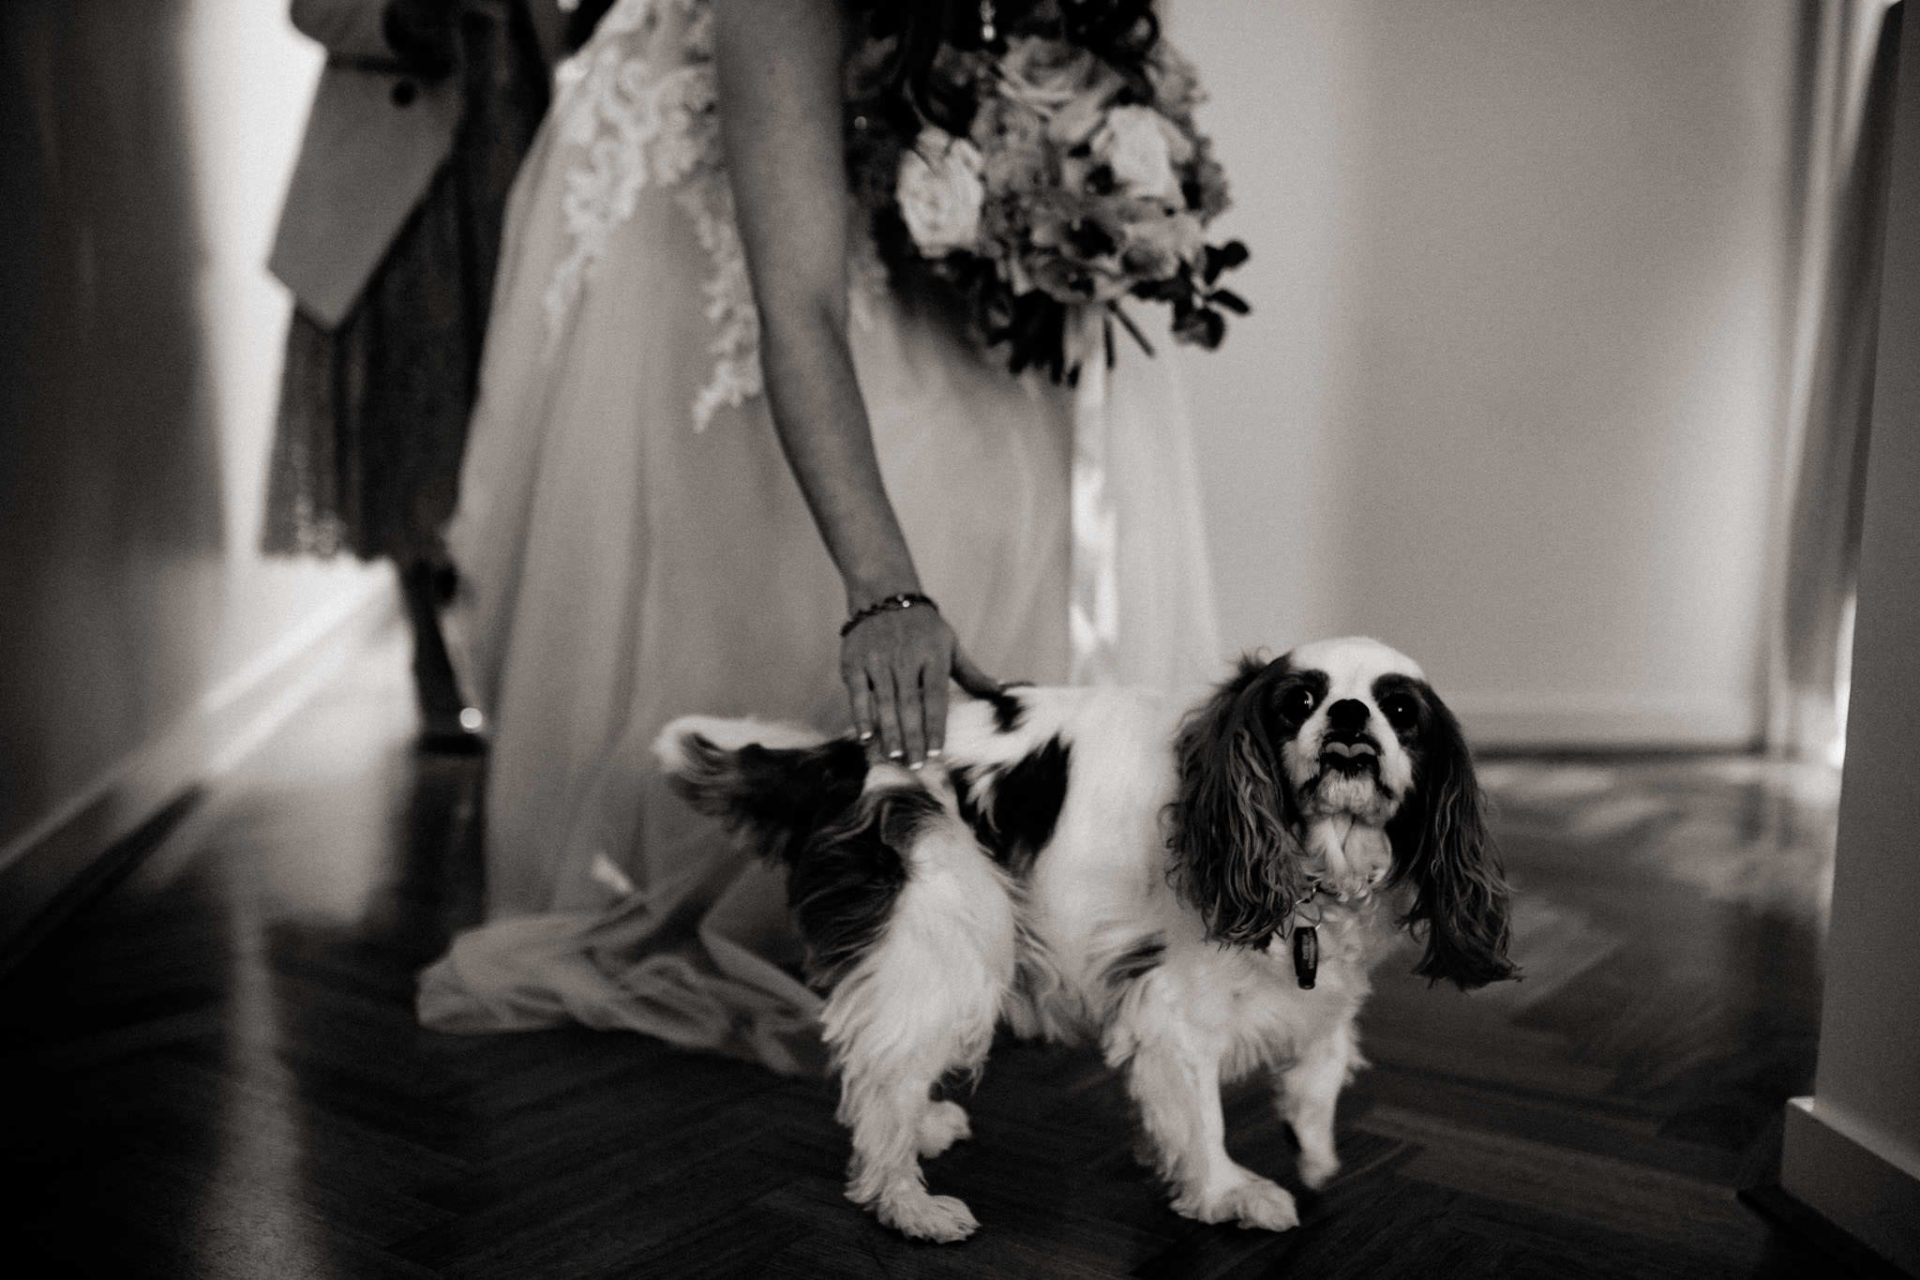 wedding with dogs-dog friendly marriage celebrant Melbourne-Georgia Mills-wedding ceremony-reception wedding venue noisy rituals-urban winery